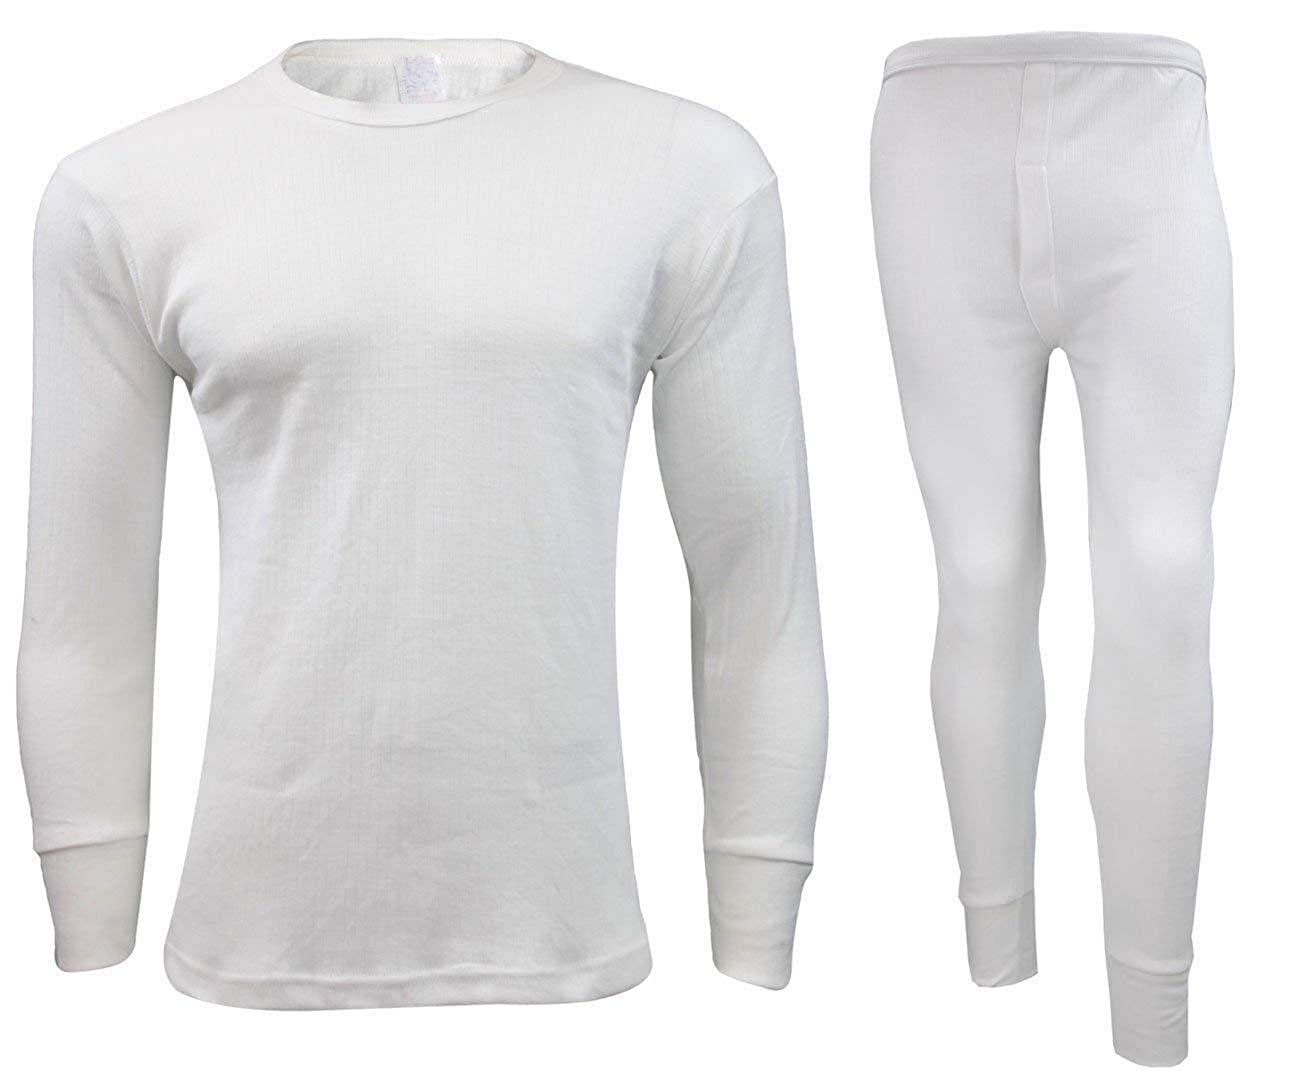 Men's Thermal Underwear Set - Full Long Sleeve Vest Top and Long Johns Bottoms Perfect Heat Micro Winter Underwear